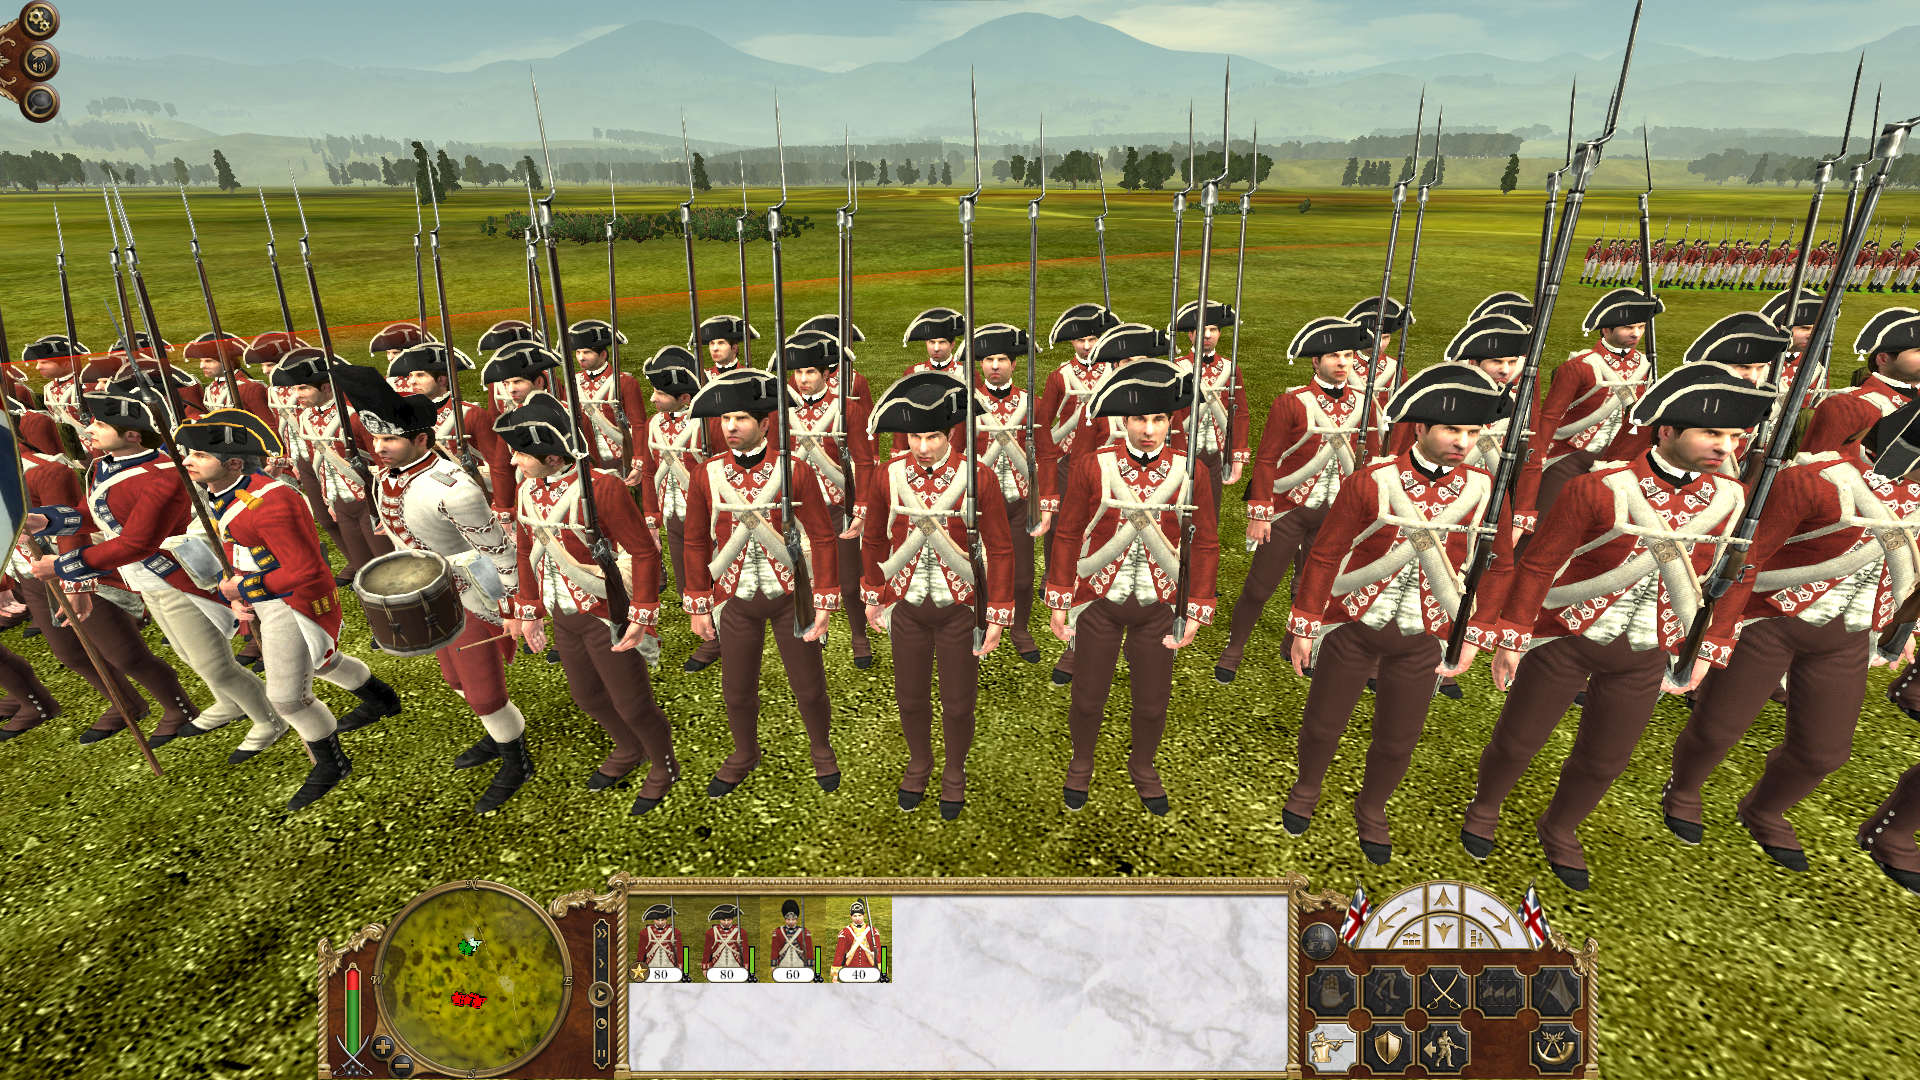 the majestys army in the age of the american revolution The red coats of the revolutionary war was a semi-professional force, trained only for conventional european warfare the british army was relatively small in stature by european standards, but supposedly superior to the inexperienced militia forces of the continental army initially available to the patriots.